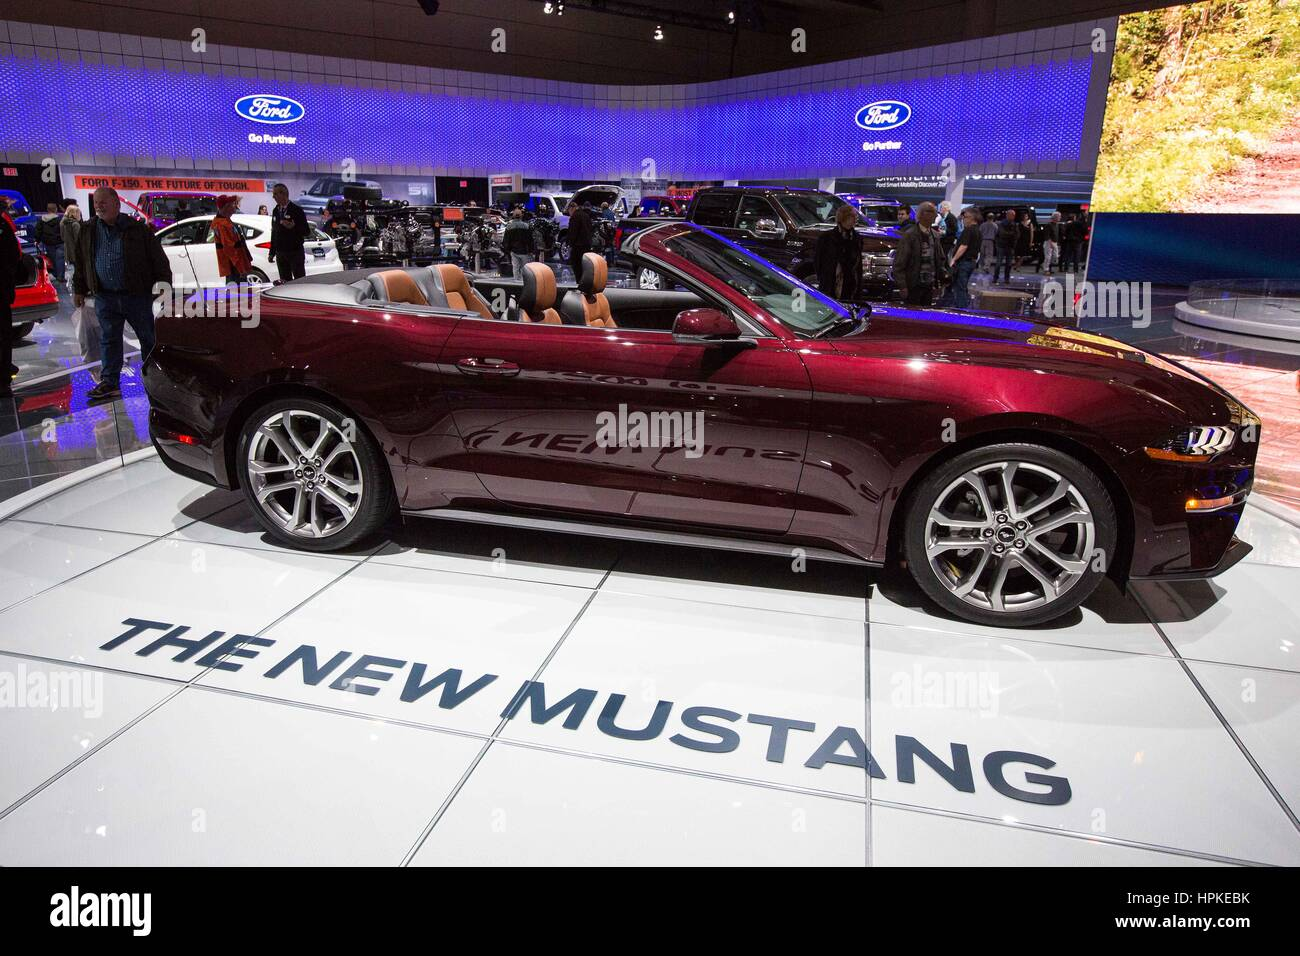 Toronto ontario canada 22nd feb 2017 the 2017 ford mustang on display during the toronto international auto show in toronto ont on feb 22 2017